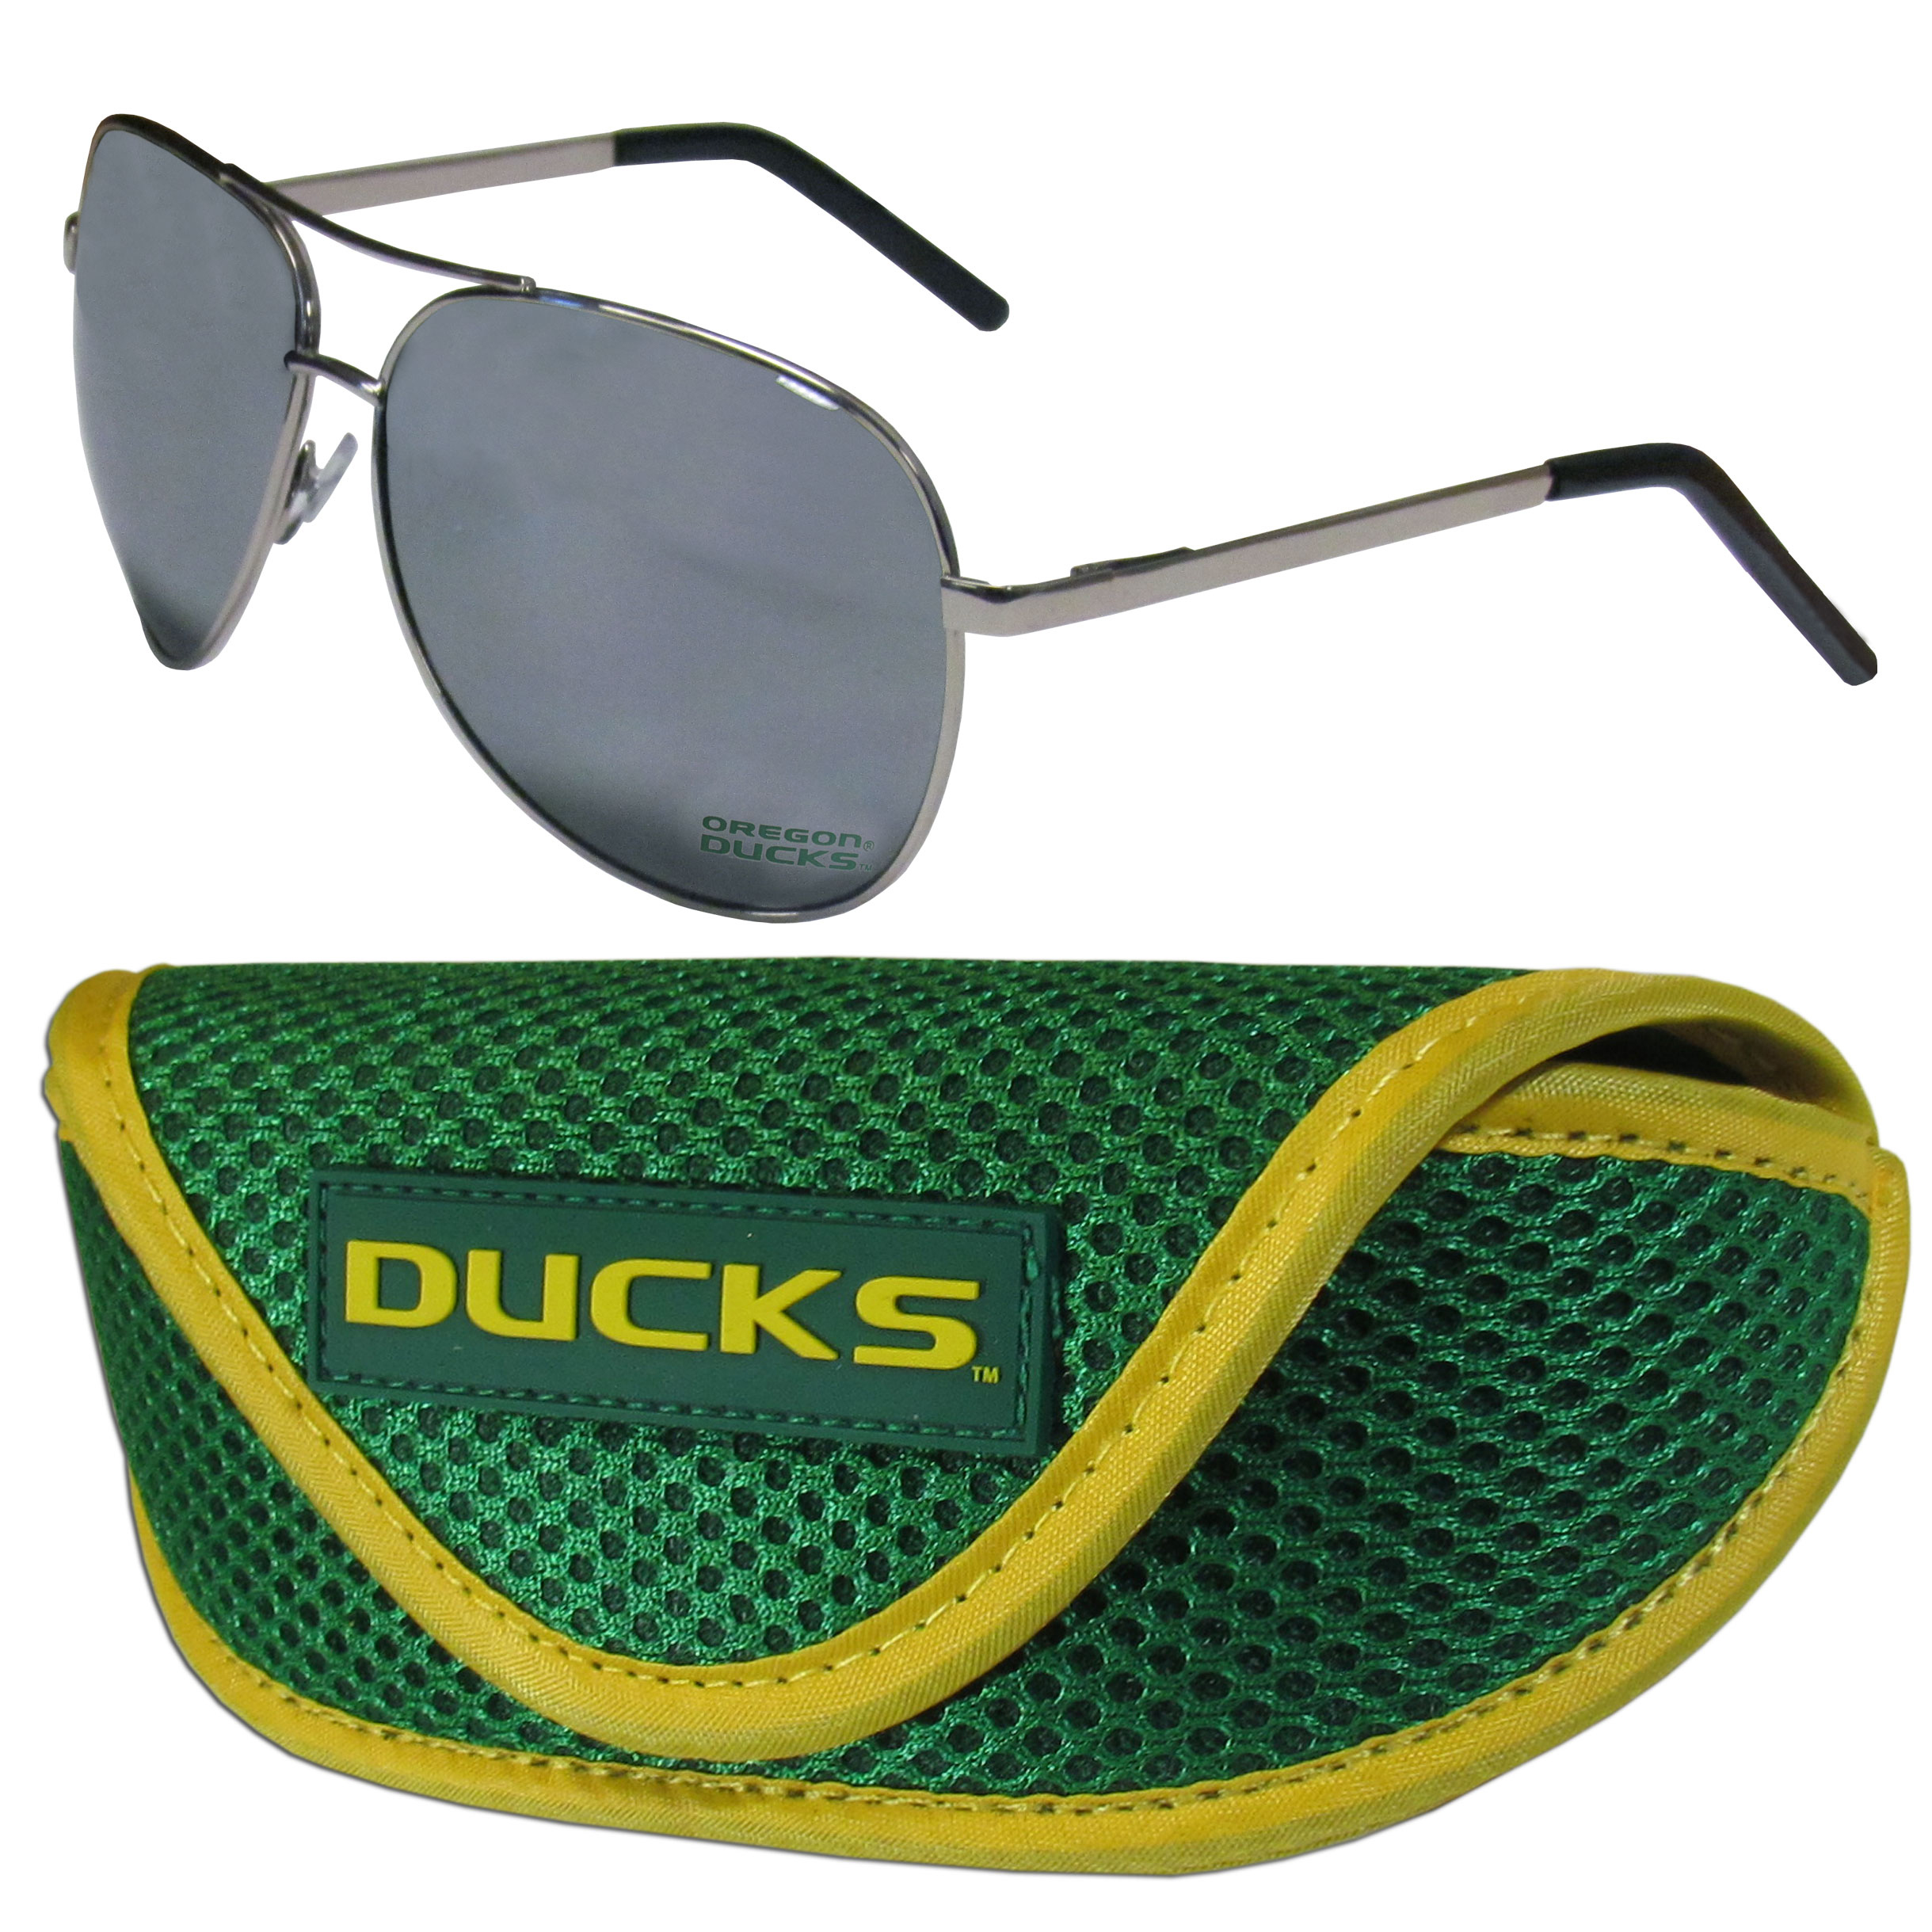 Oregon Ducks Aviator Sunglasses and Sports Case - Aviator sunglasses are truly an iconic retro fashion statement that never goes out-of-style. Our Oregon Ducks  aviator sunglasses pair this classic look with your love of the game. The iridium coated lenses reduce glare while driving, boating, golfing and their 100% UVA/UVB rating provides you with the maximum UV protection for all your outdoor activities. A millennial favorite, these affordable designer frames are the perfect eyewear accessory for a sports fan that is looking for high-quality at an affordable price. The durable, flex hinged frames are tough enough for hiking and camping or if you prefer sun bathing by the pool or on the beach these shades will really stand the test of time. The sunglasses come with a sporty case which has a large team logo on the lid that will make even the most die-hard fan proud!